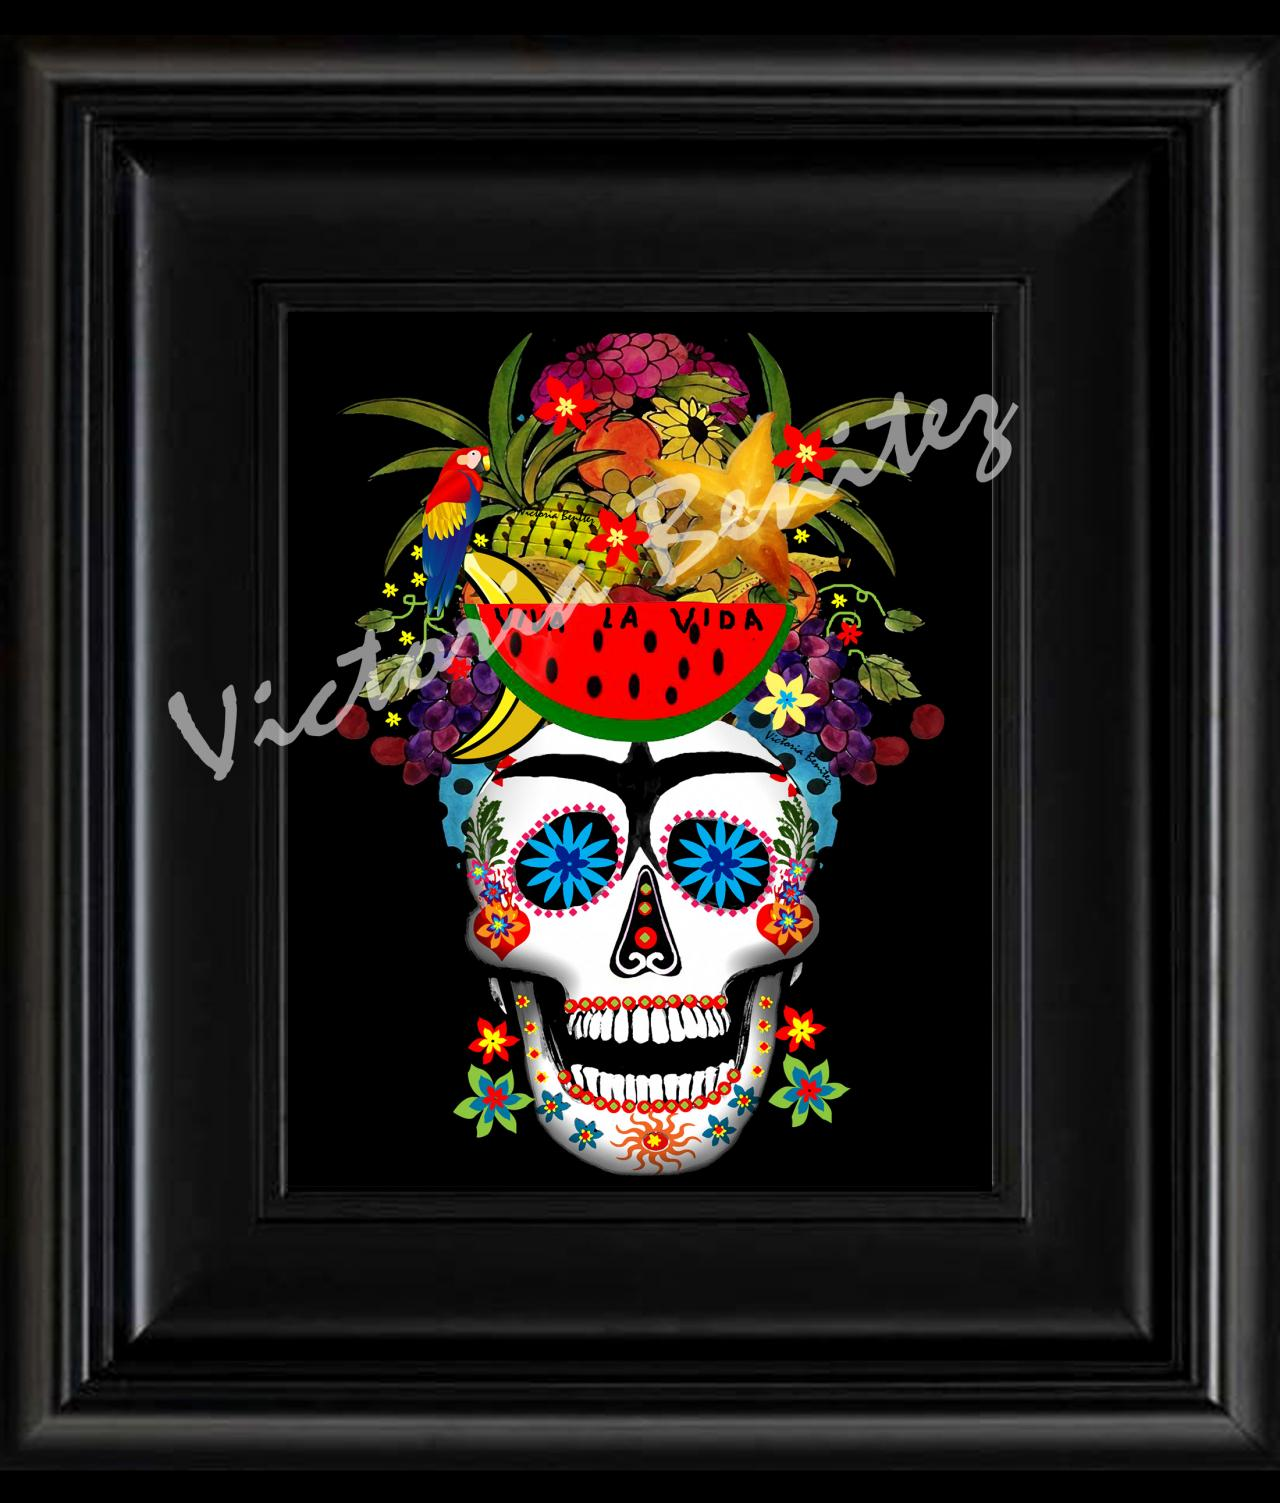 "FRIDA KAHLO day of the dead RIO WATERMELON SUGAR SKULL digital oil painting design 8"" X 10"" photo print"